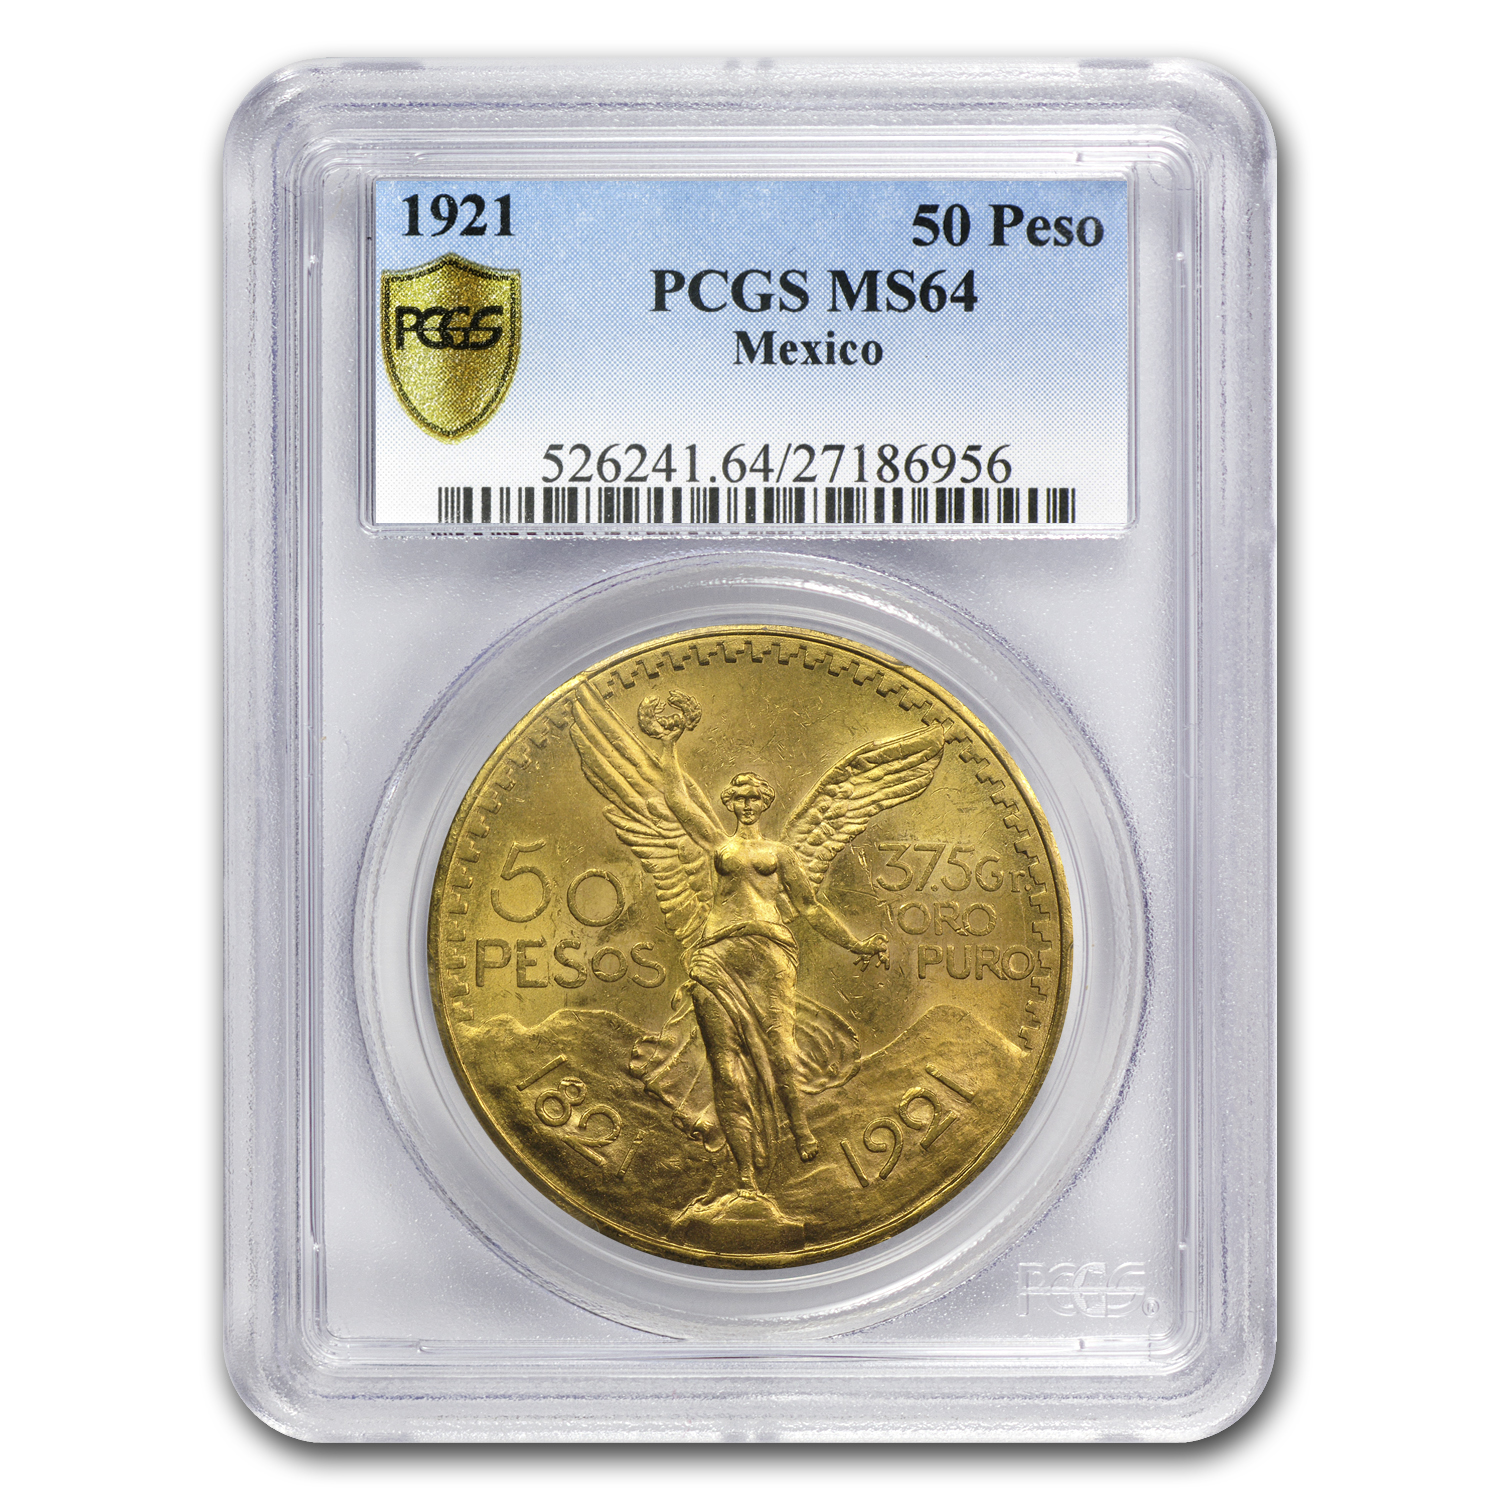 Mexico 1921 50 Pesos Gold Coin - MS-64 PCGS